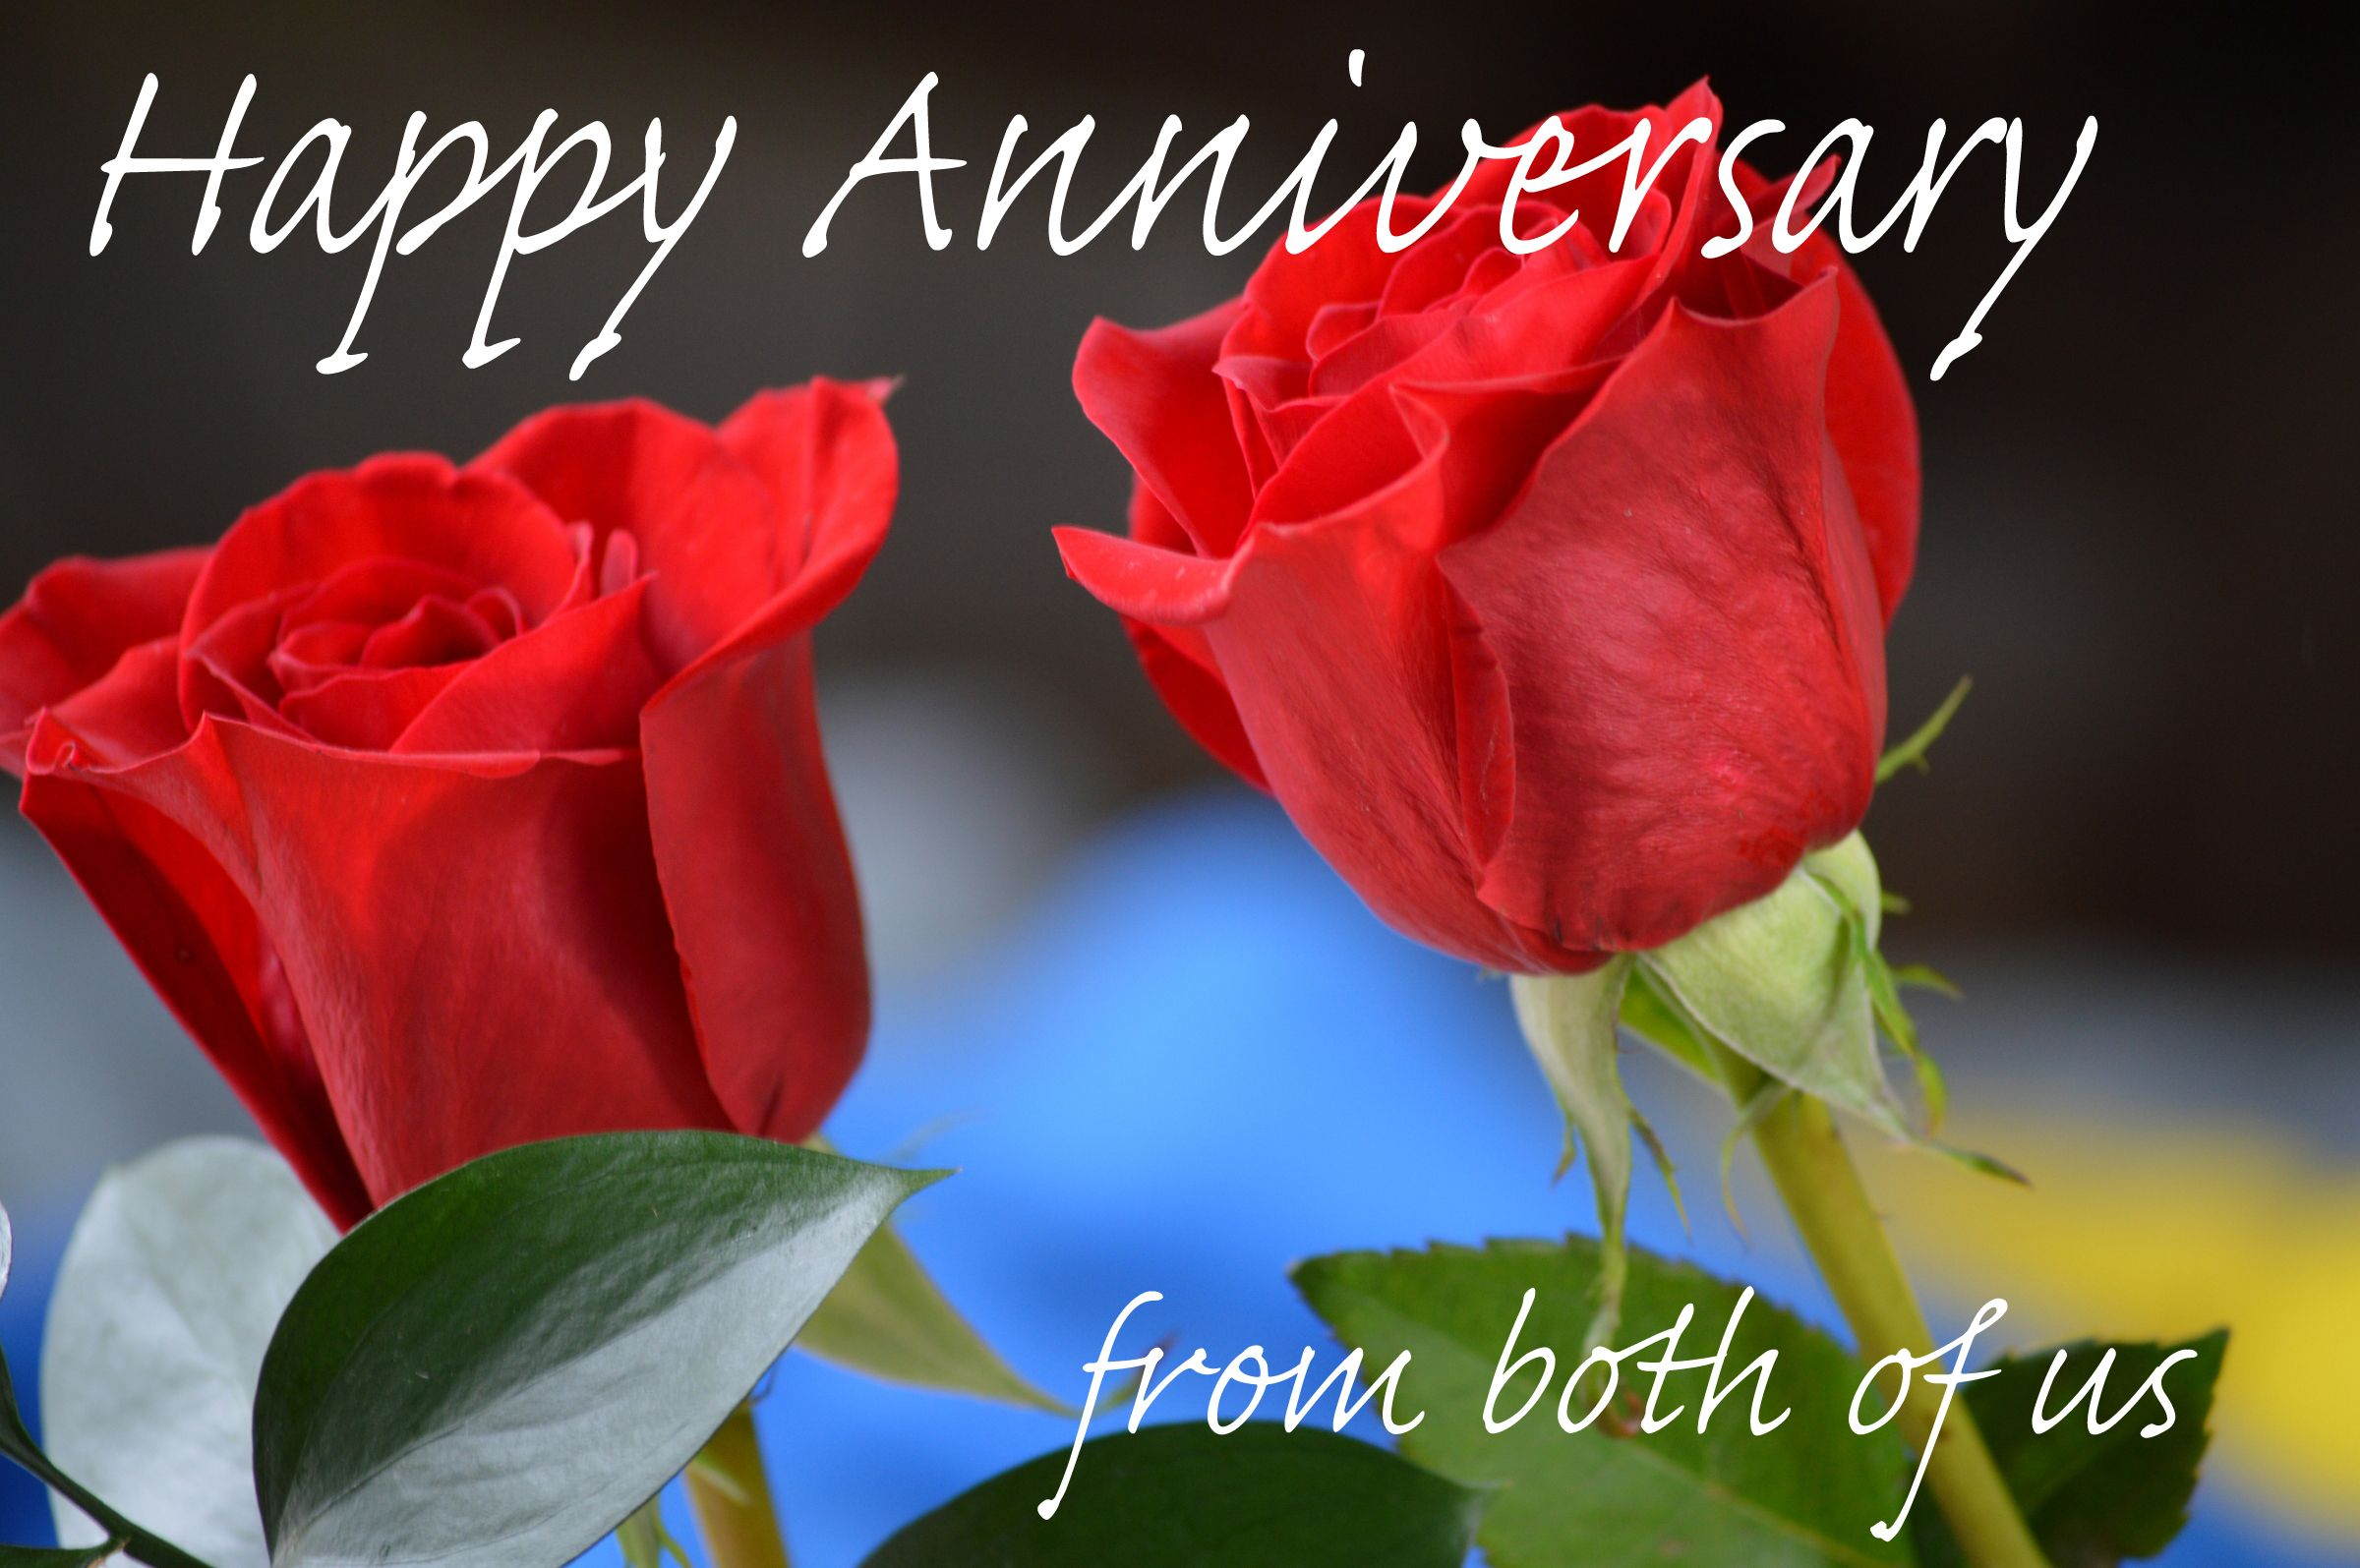 Digital Happy Anniversary Card From Both Of Us Happy Anniversary Cards E Greeting Cards Electronic Greeting Cards